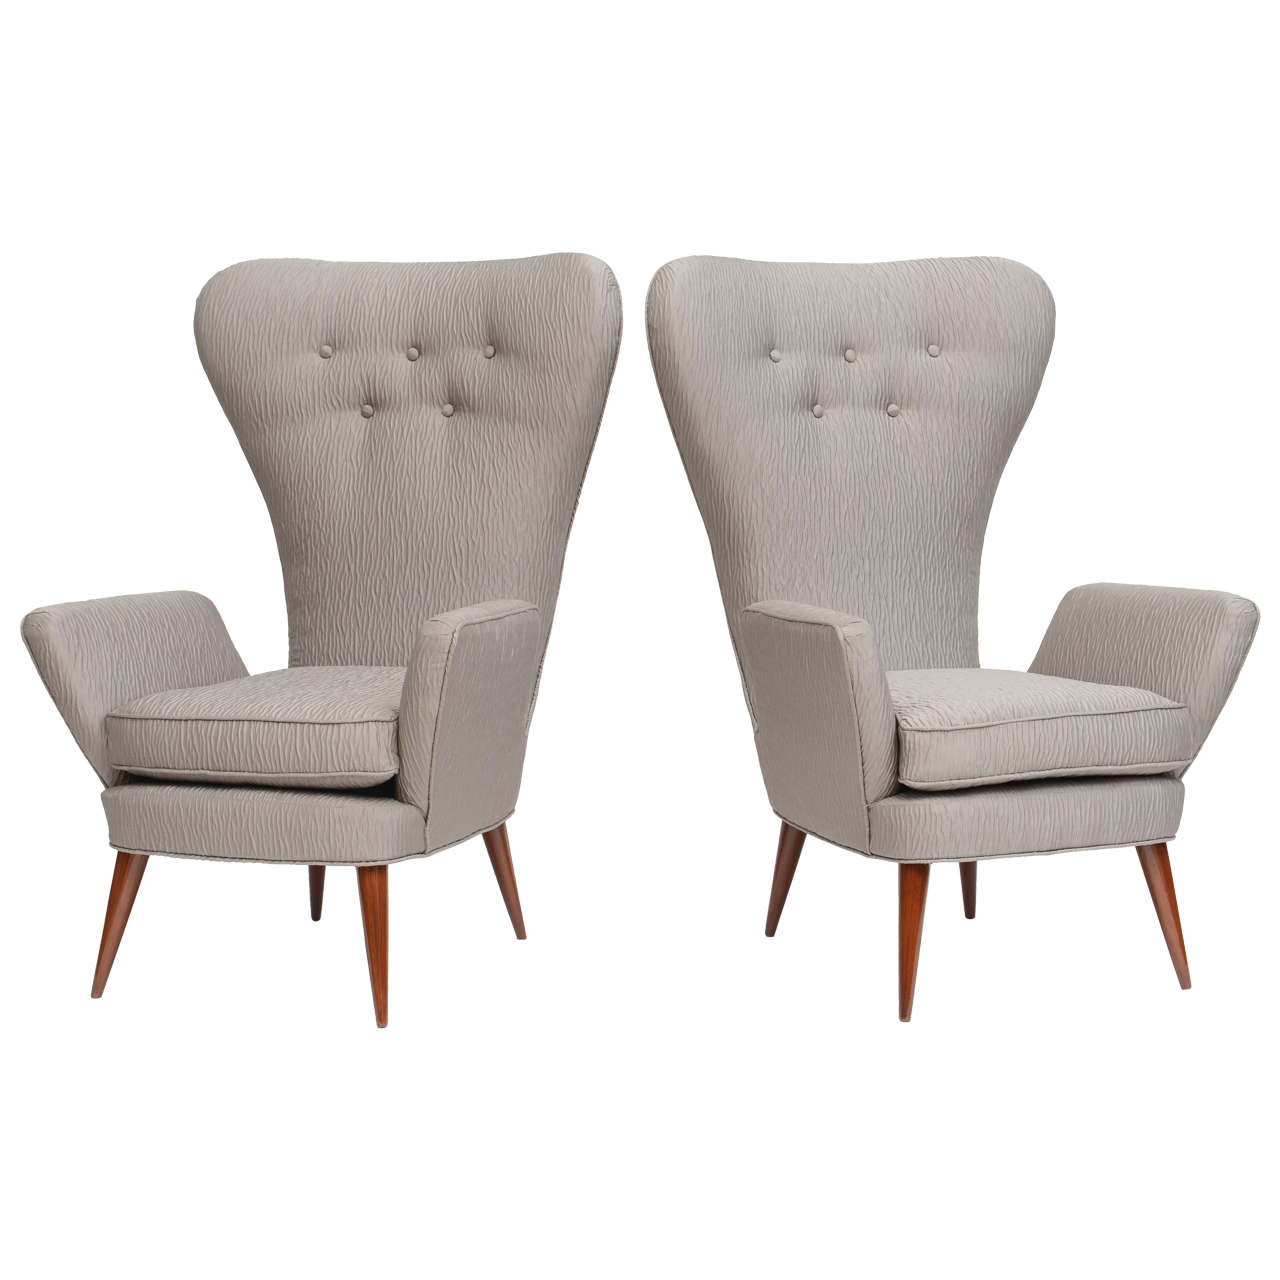 Pair of italian modern high back chairs italy at 1stdibs for Chair in italian